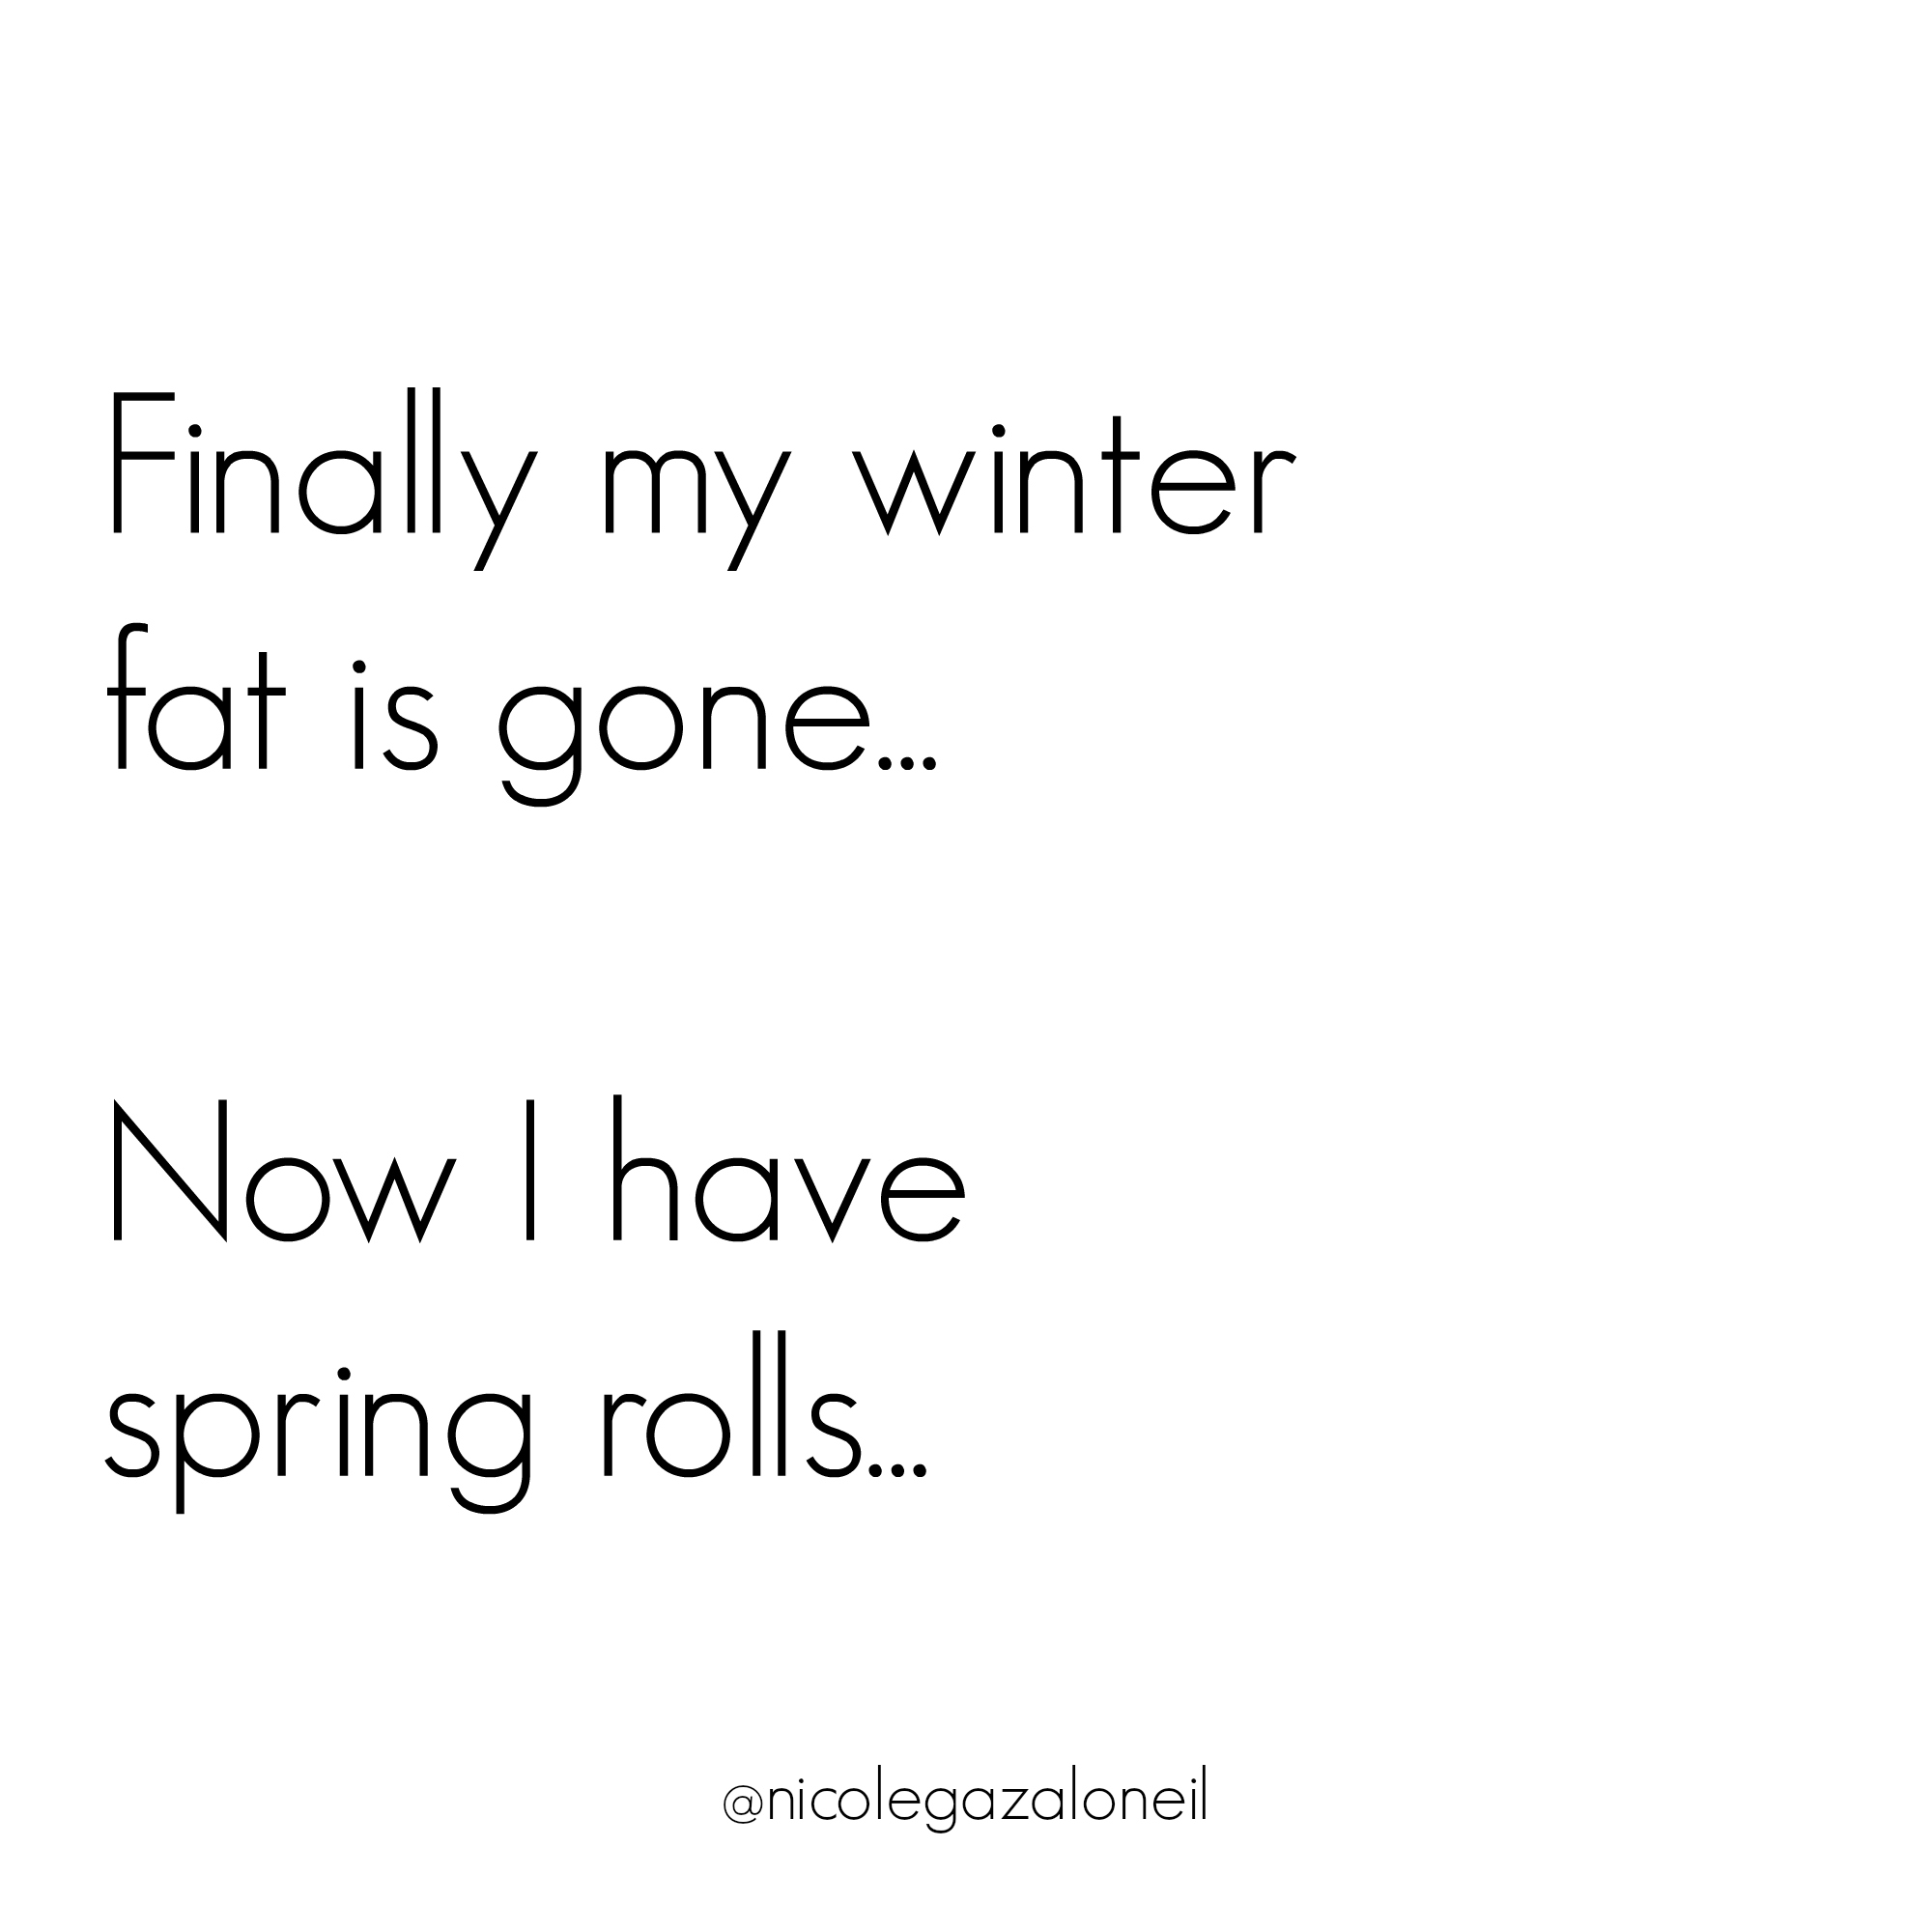 Finally My Winter Fat Is Gone Now I Have Spring Rolls